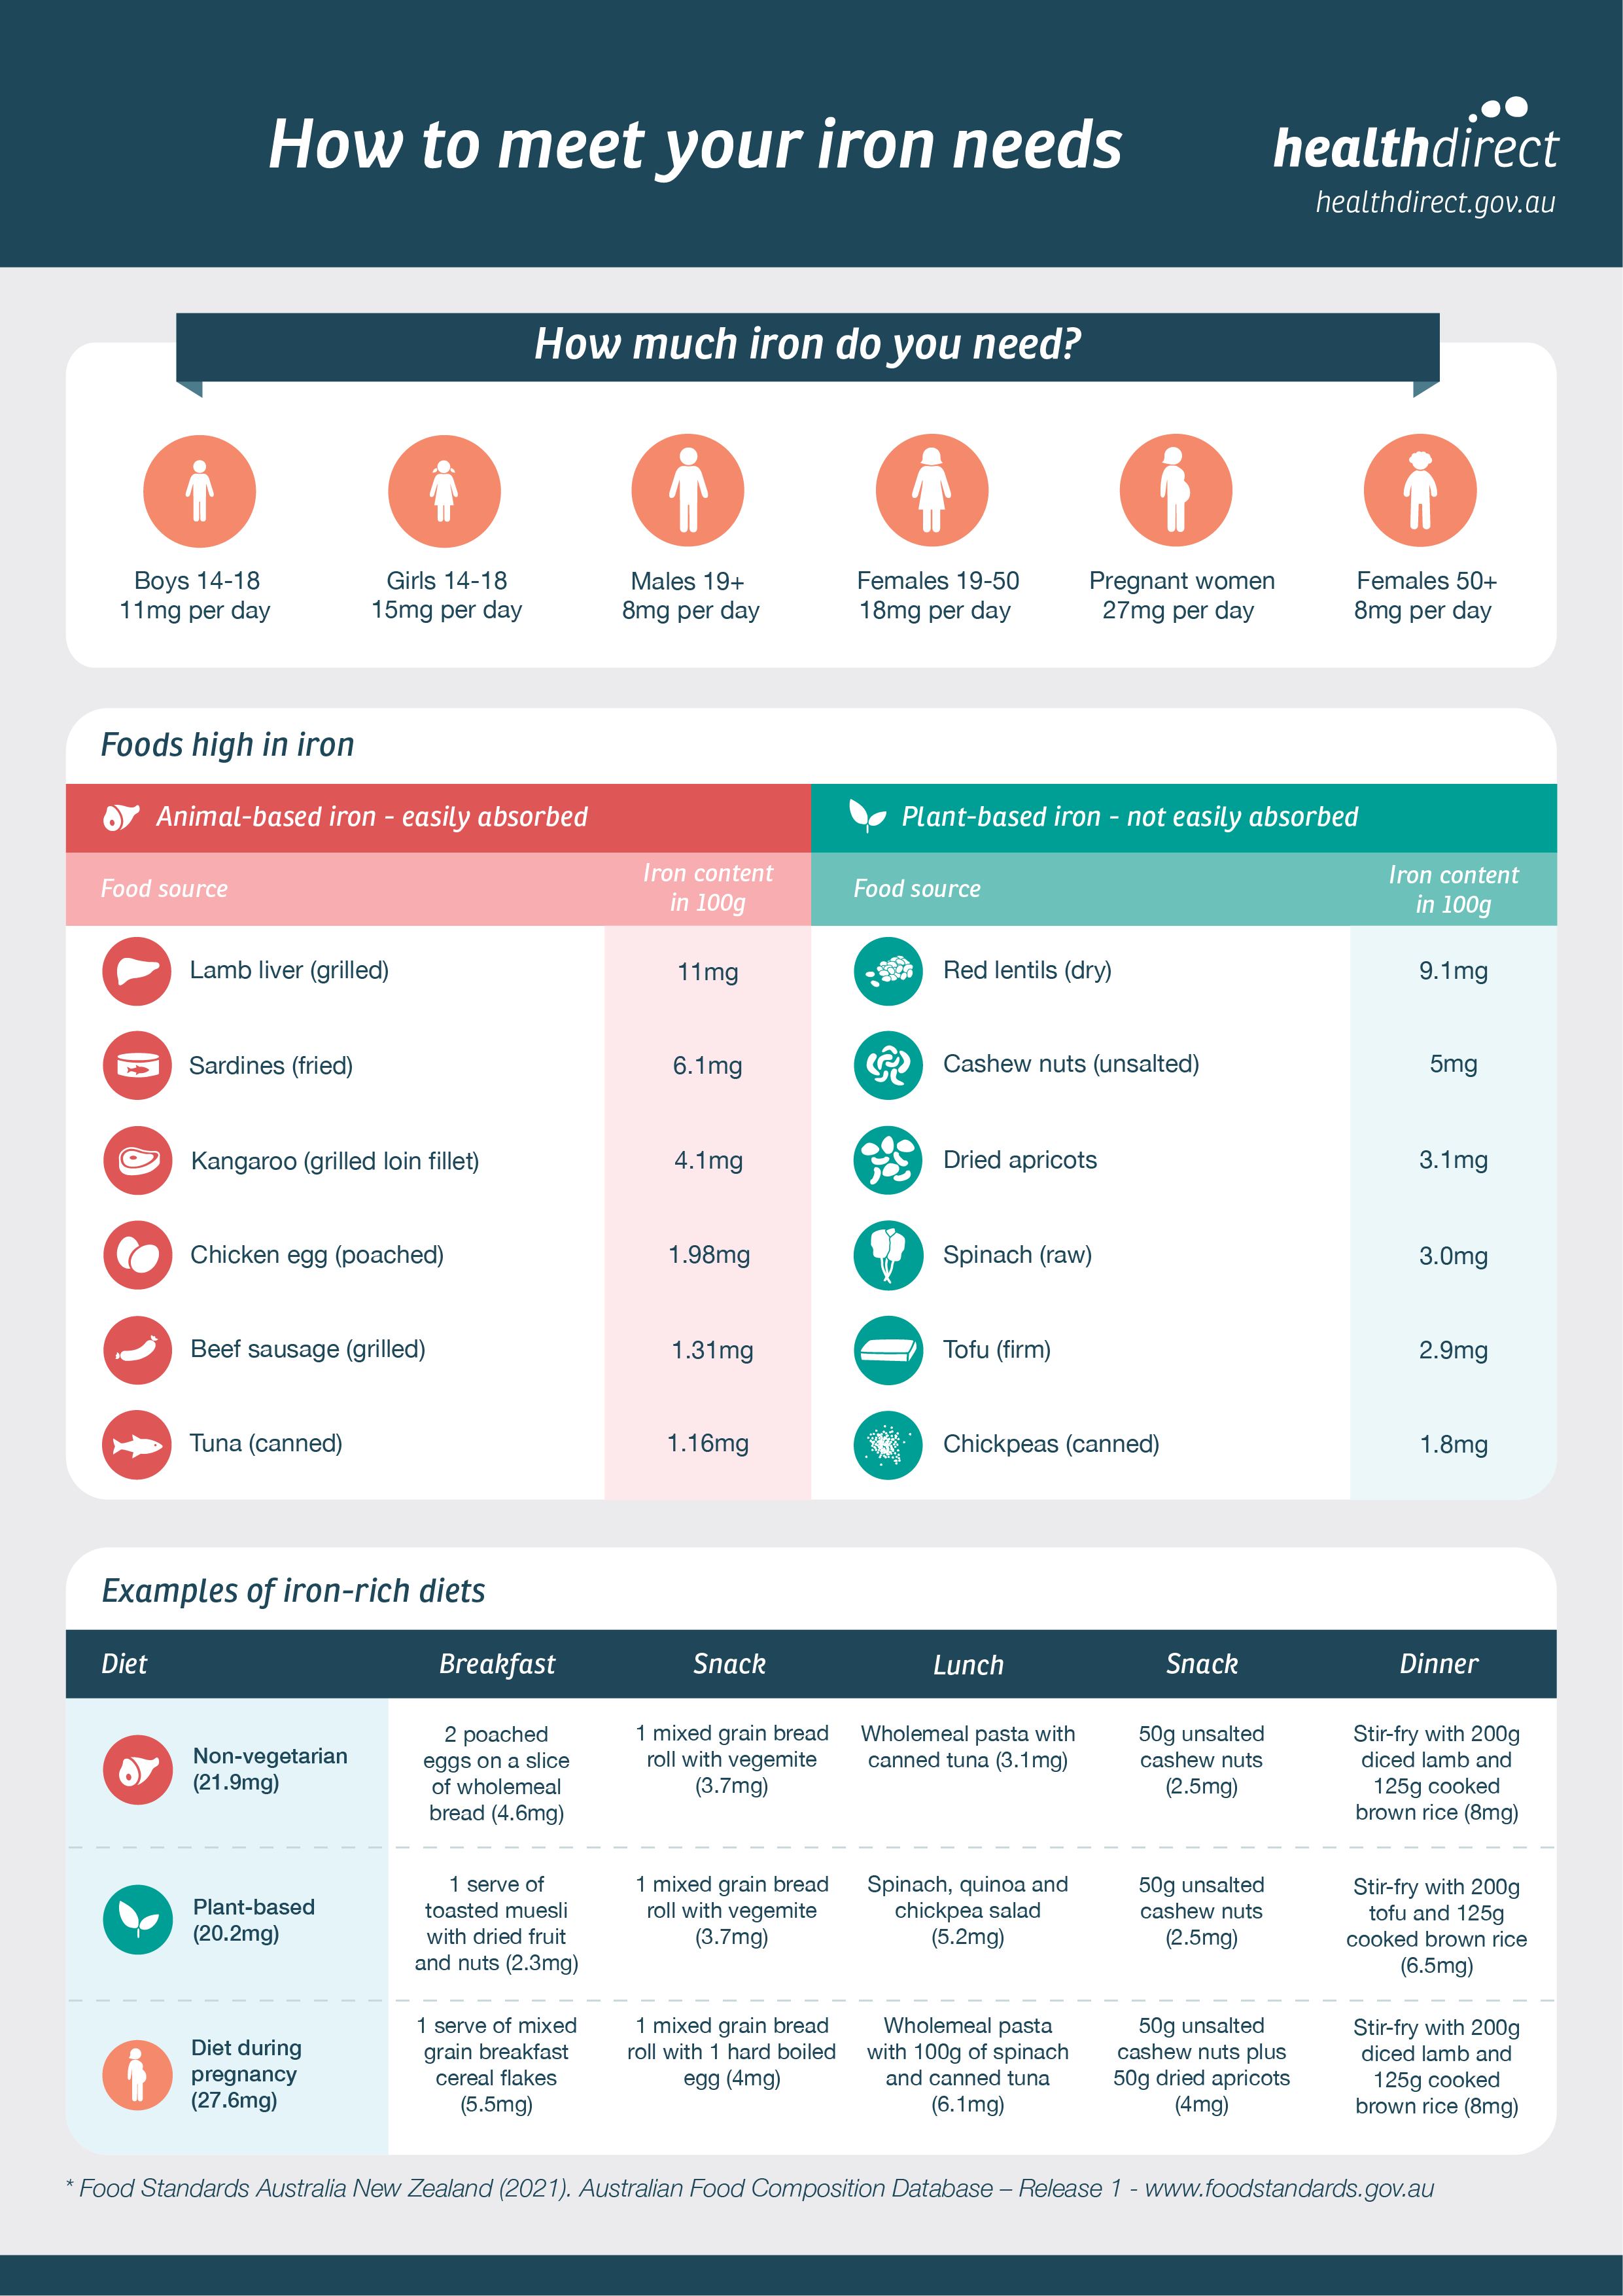 How to meet your iron needs infographic